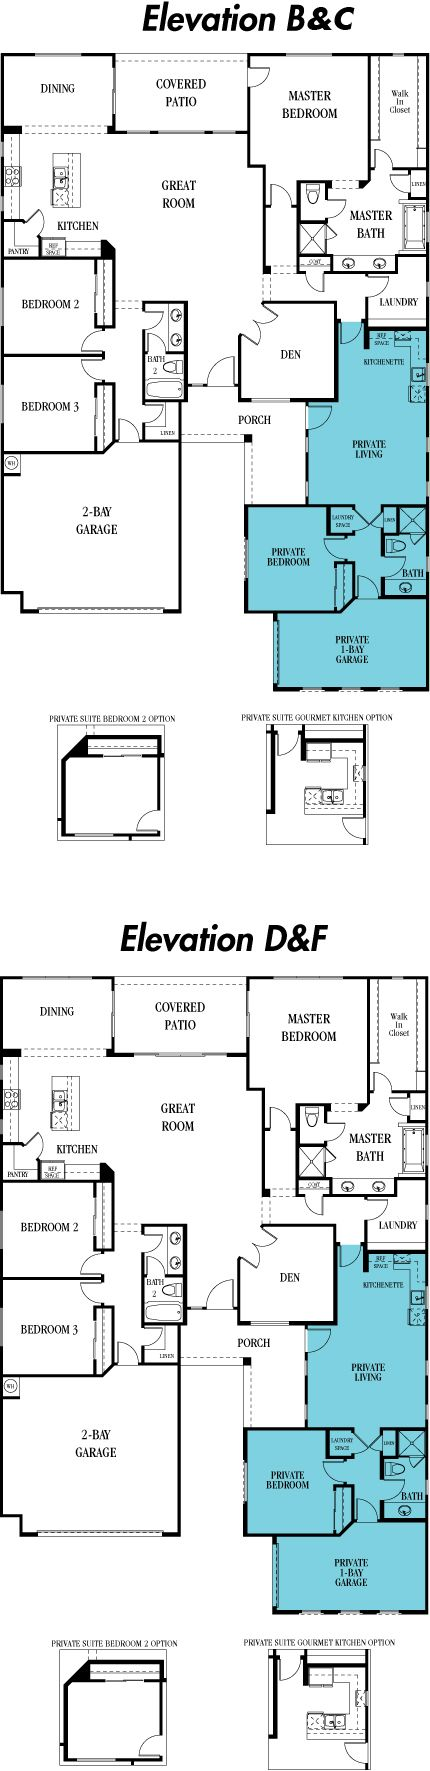 5582 Evolution - Next Gen: This one story home includes a main home and a private suite that are seamlessly connected with a dual access door for a total of 4 bedrooms, 3 bathrooms, and 2,958 sq. ft.